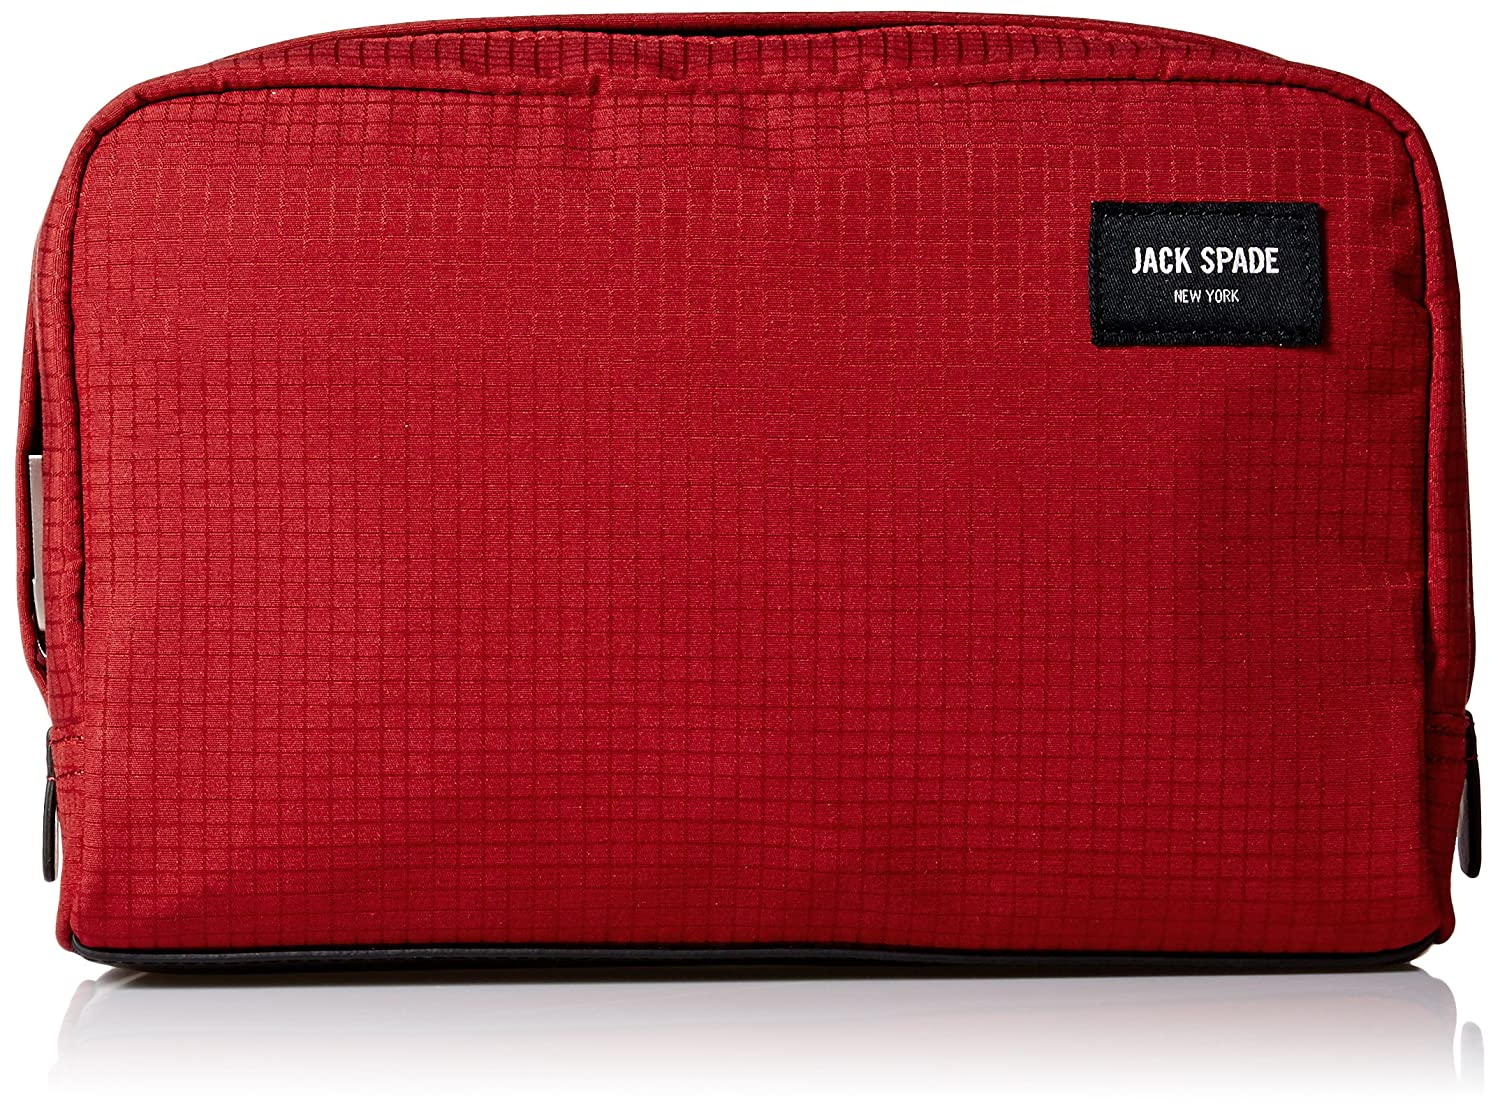 Amazon.com: Jack Spade Men's Solid Ripstop Slim Toiletry Kit, Red: Clothing